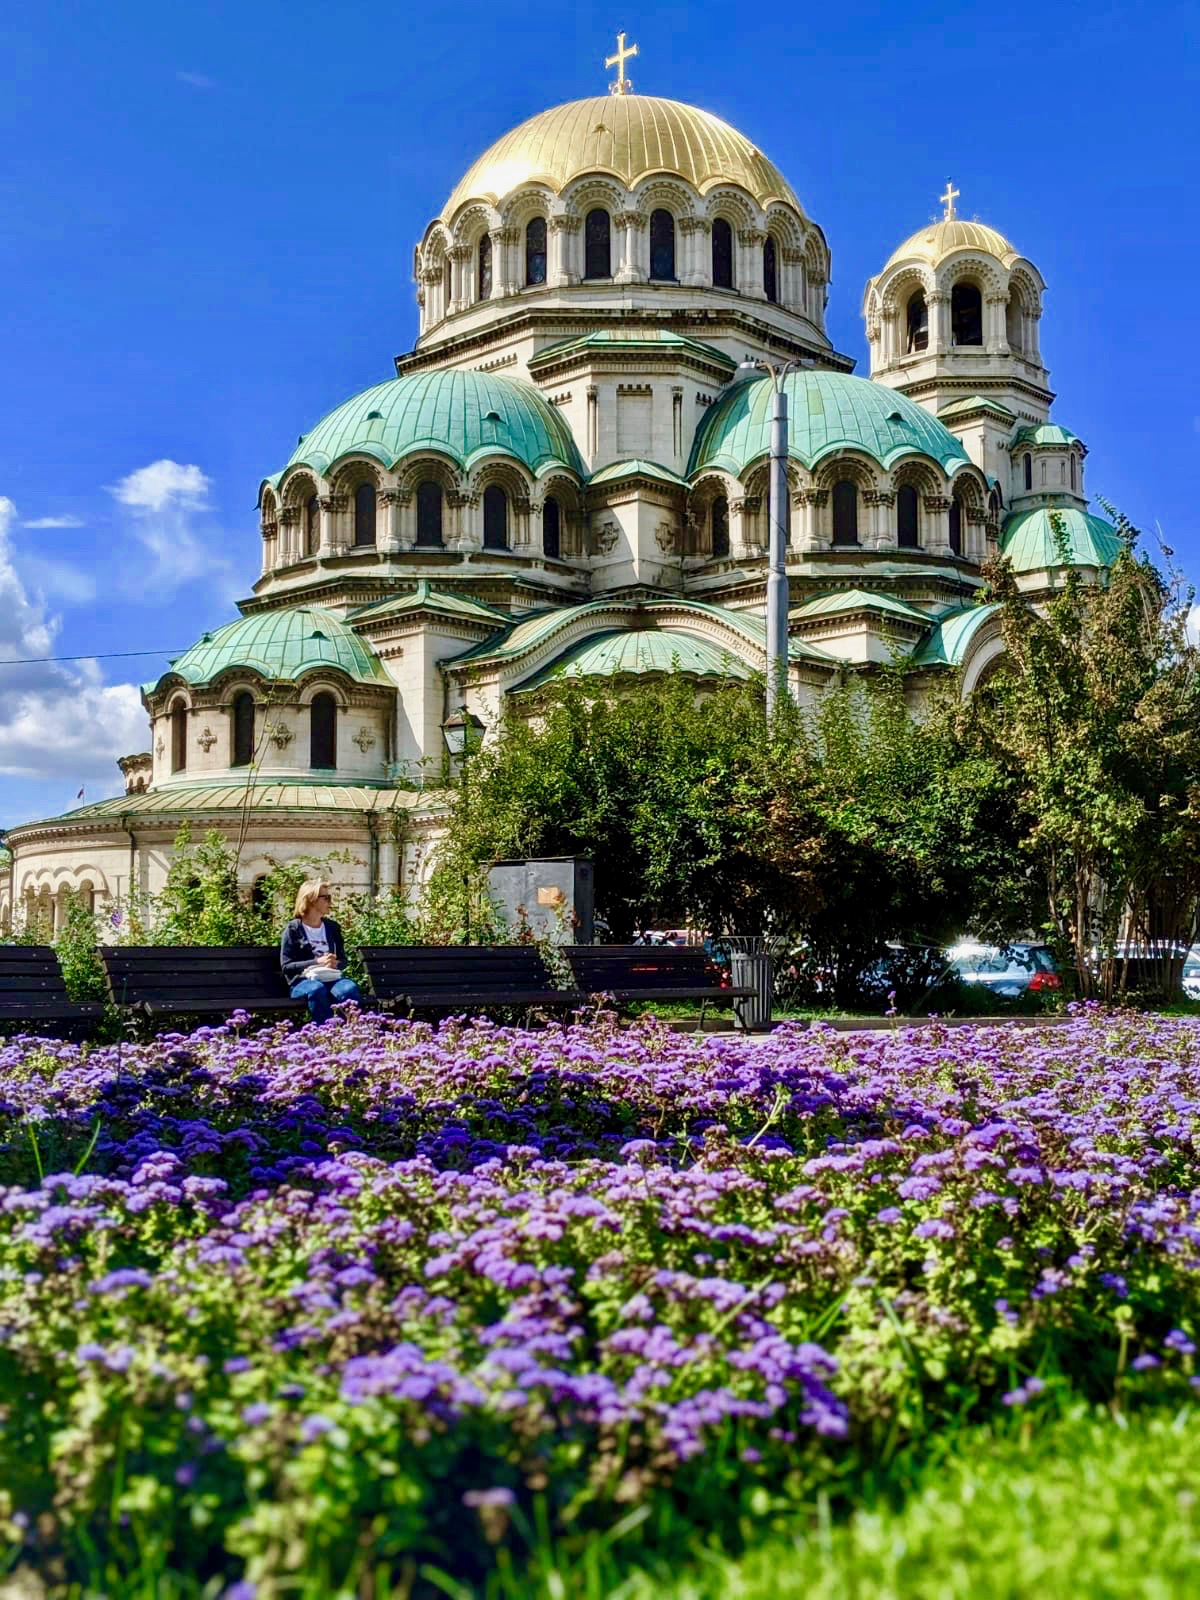 cheap european city break - the Alexander Nevsky Catherdral in Sofia, Bulgaria, with purple flowers in the foreground and a bright blue sky above